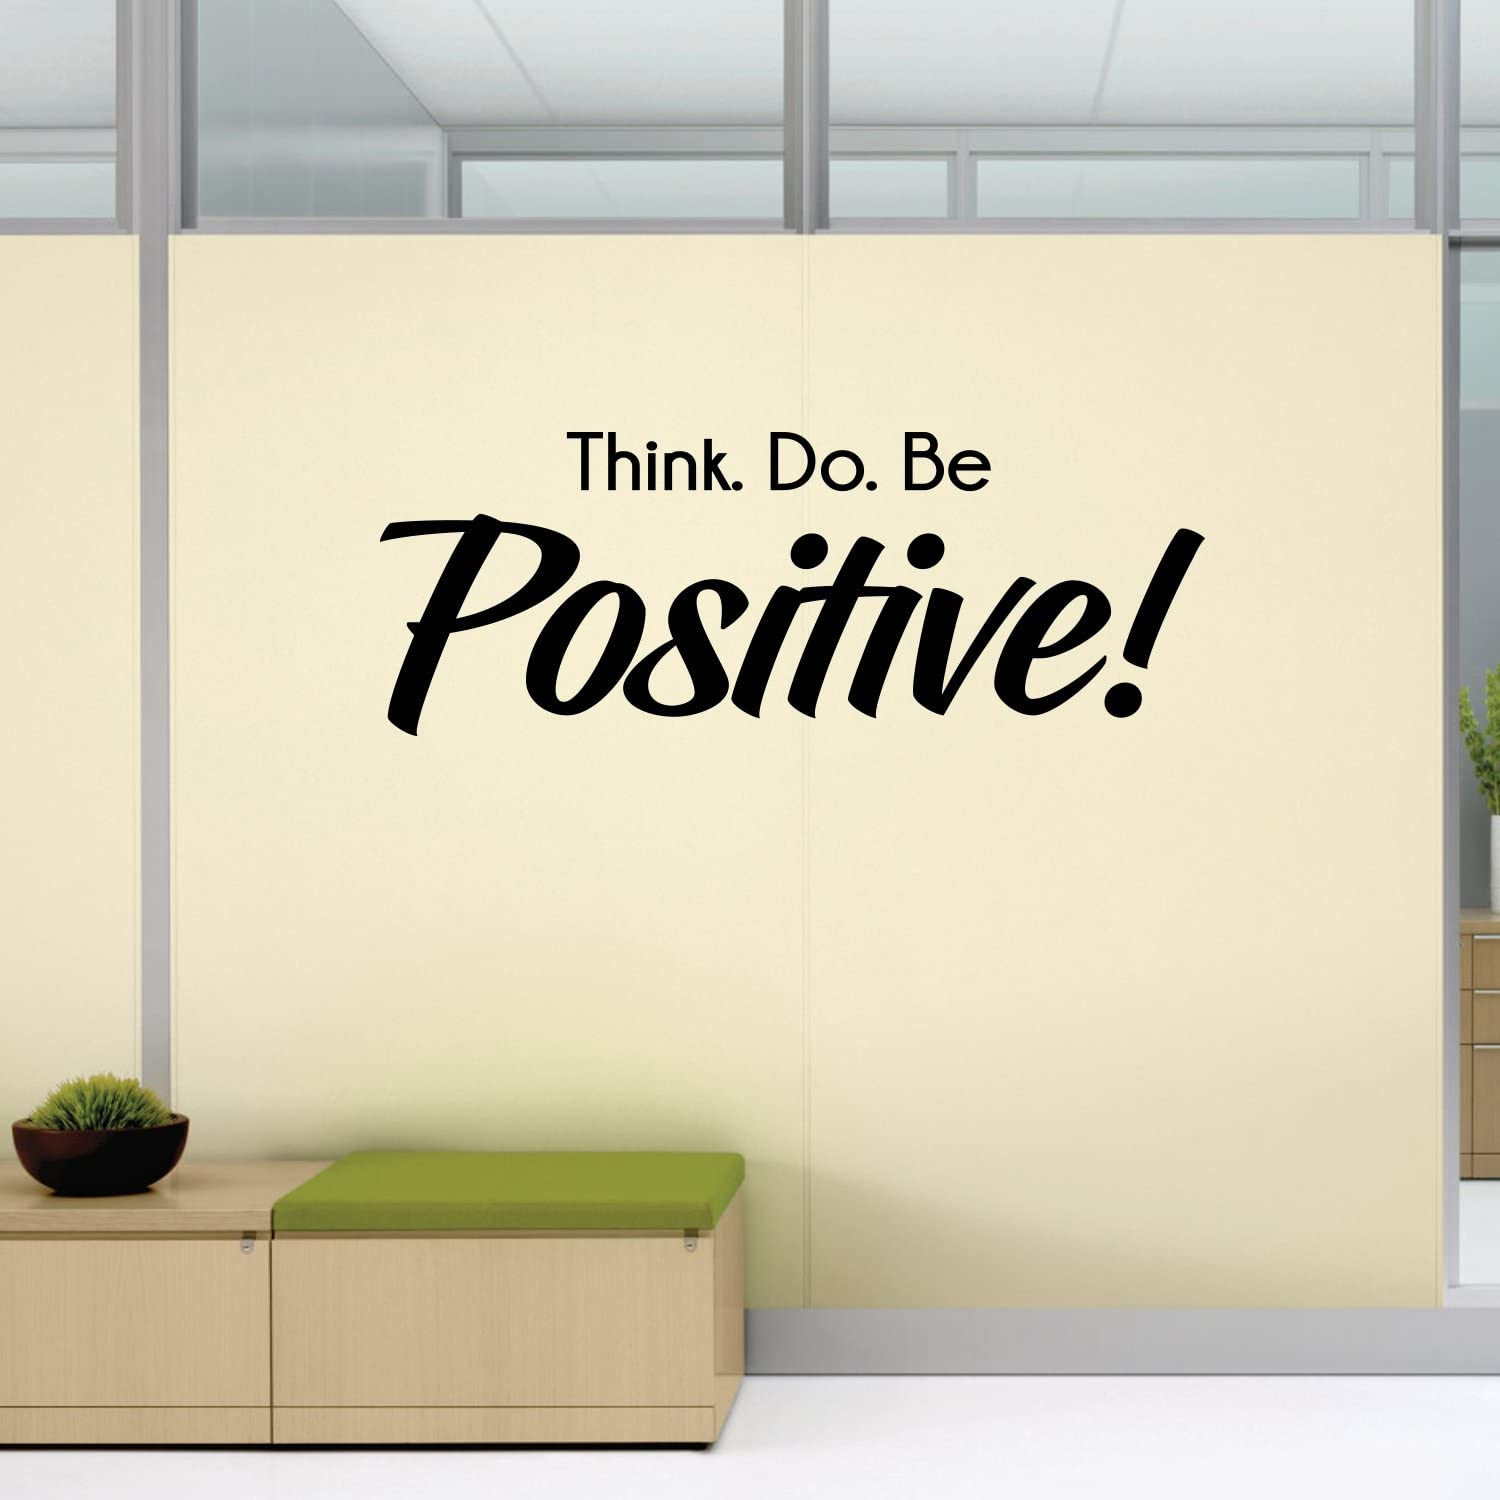 Details about  /Wall Vinyl Decal Quotes Words Inspire Palms Bedroom Professional Dreamer z3883